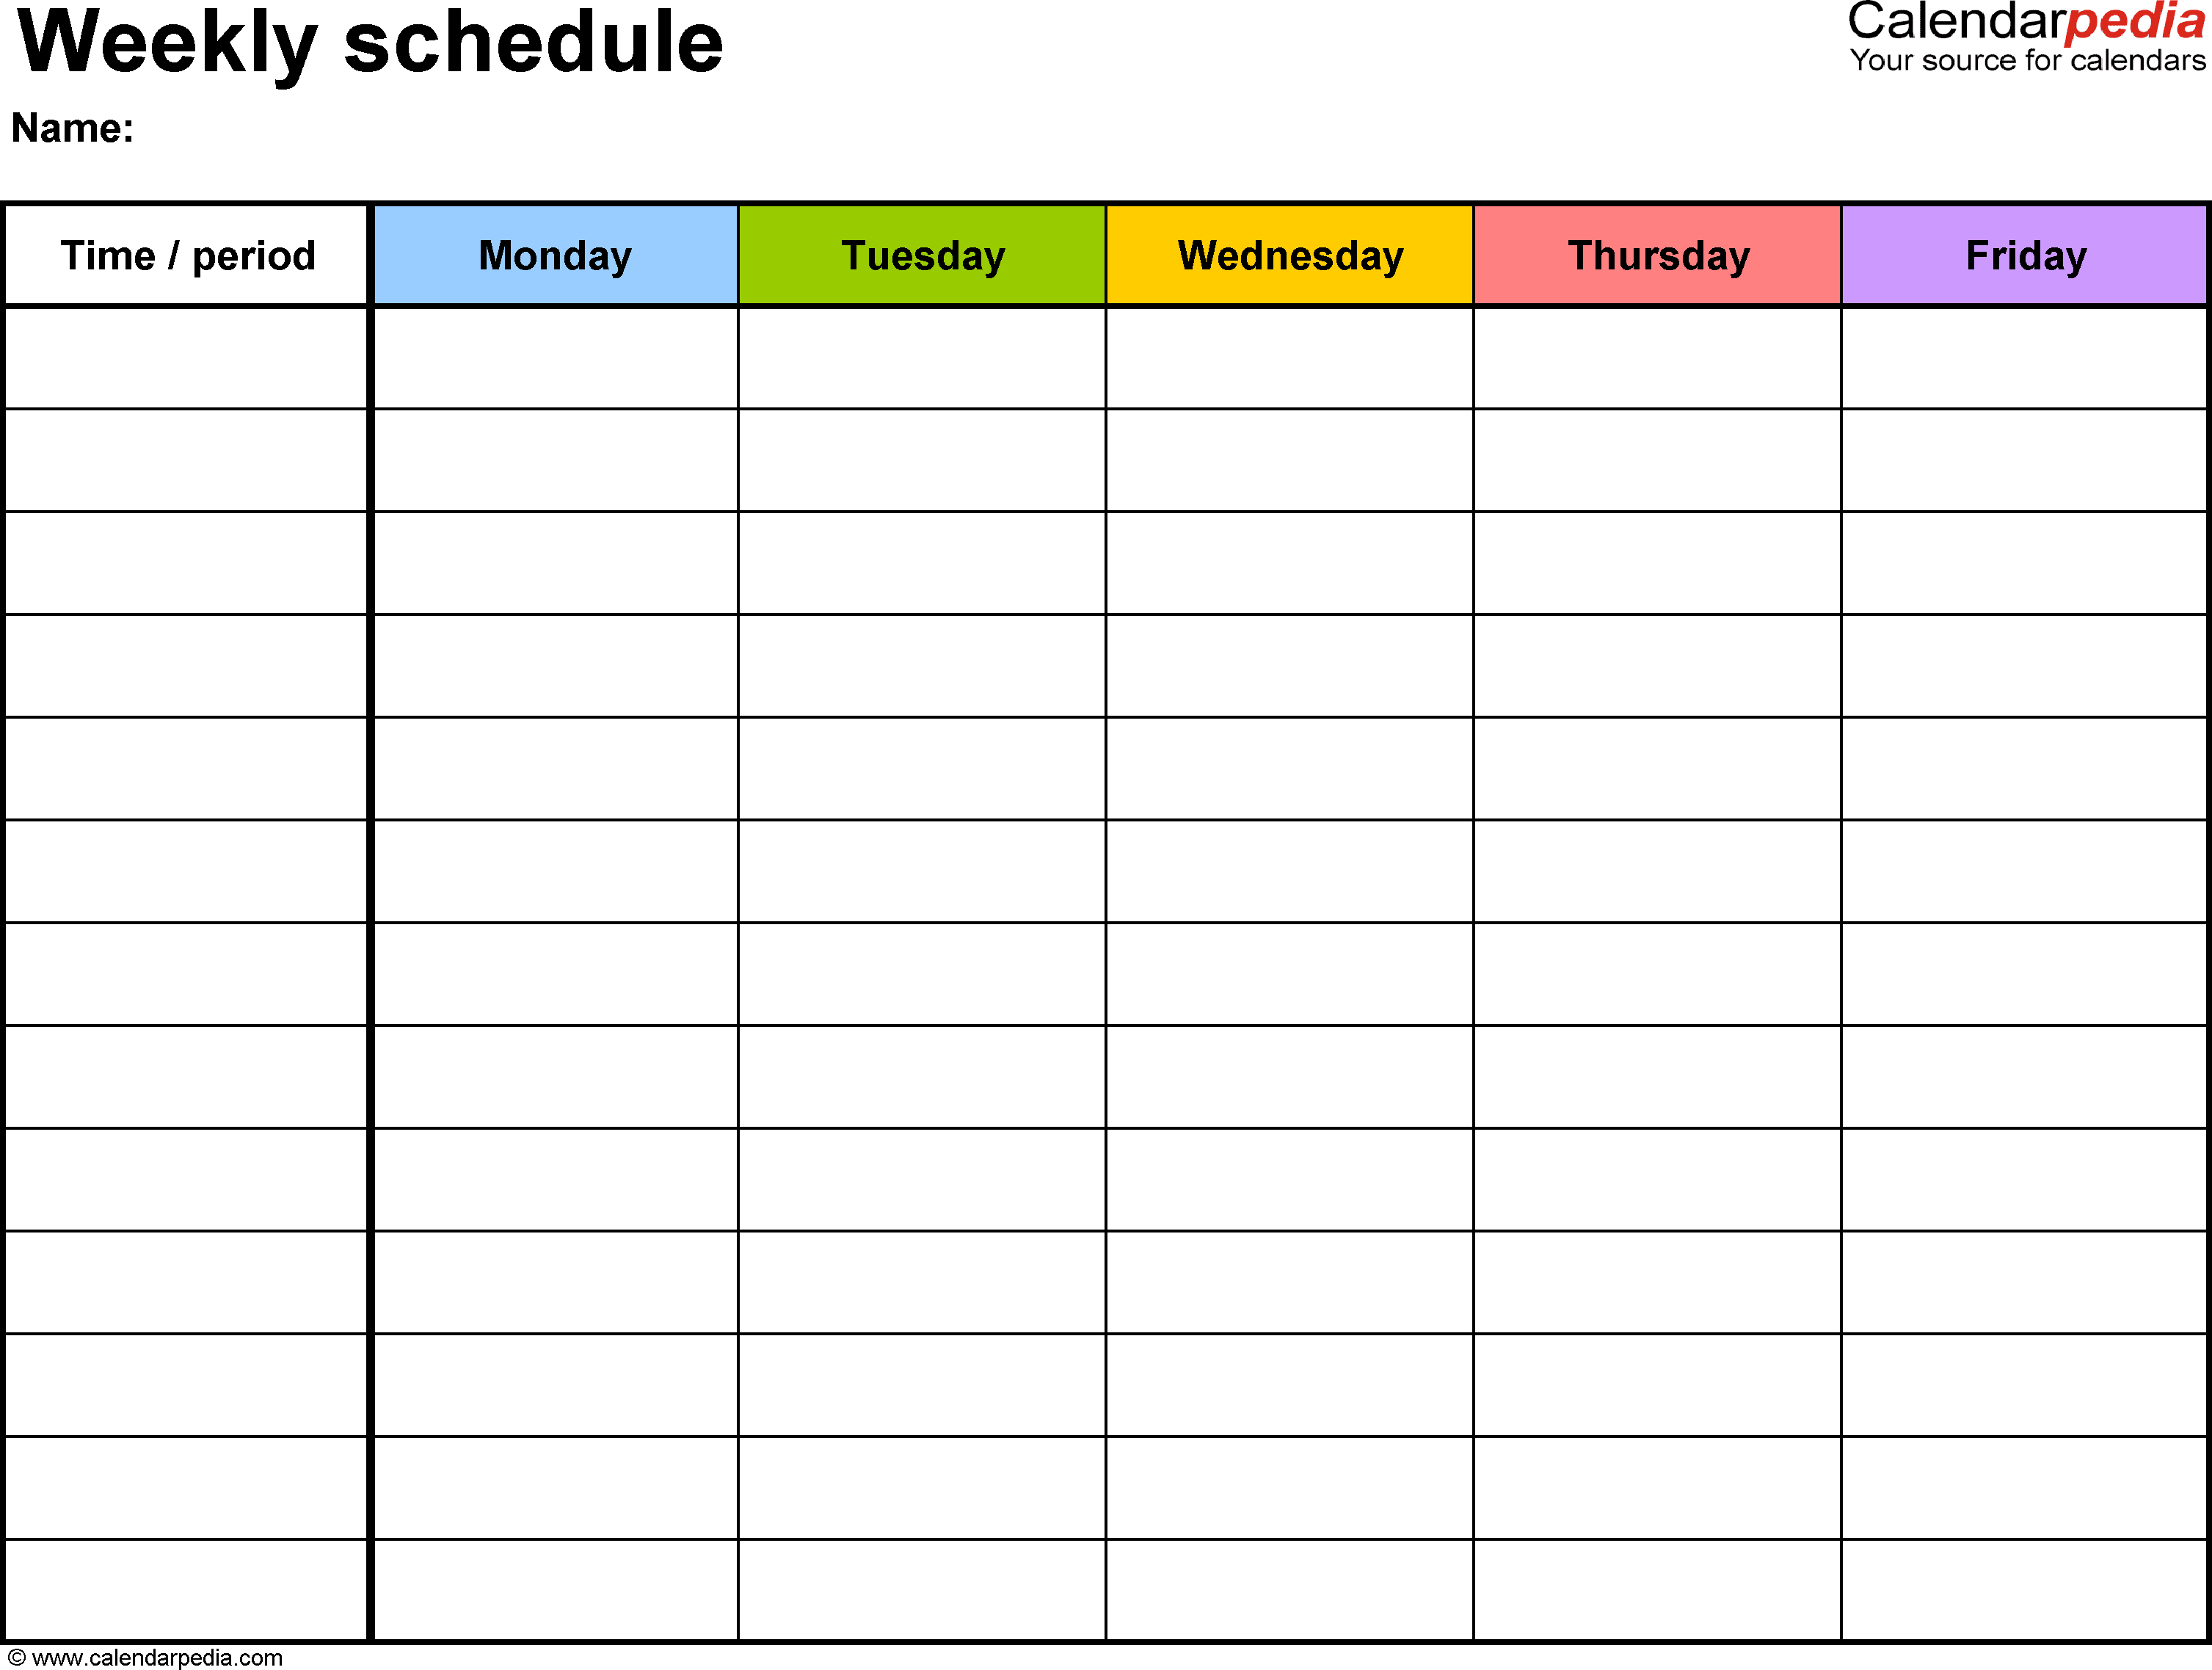 Free Weekly Schedule Templates For Word  18 Templates with Summer Camp Schedule Template